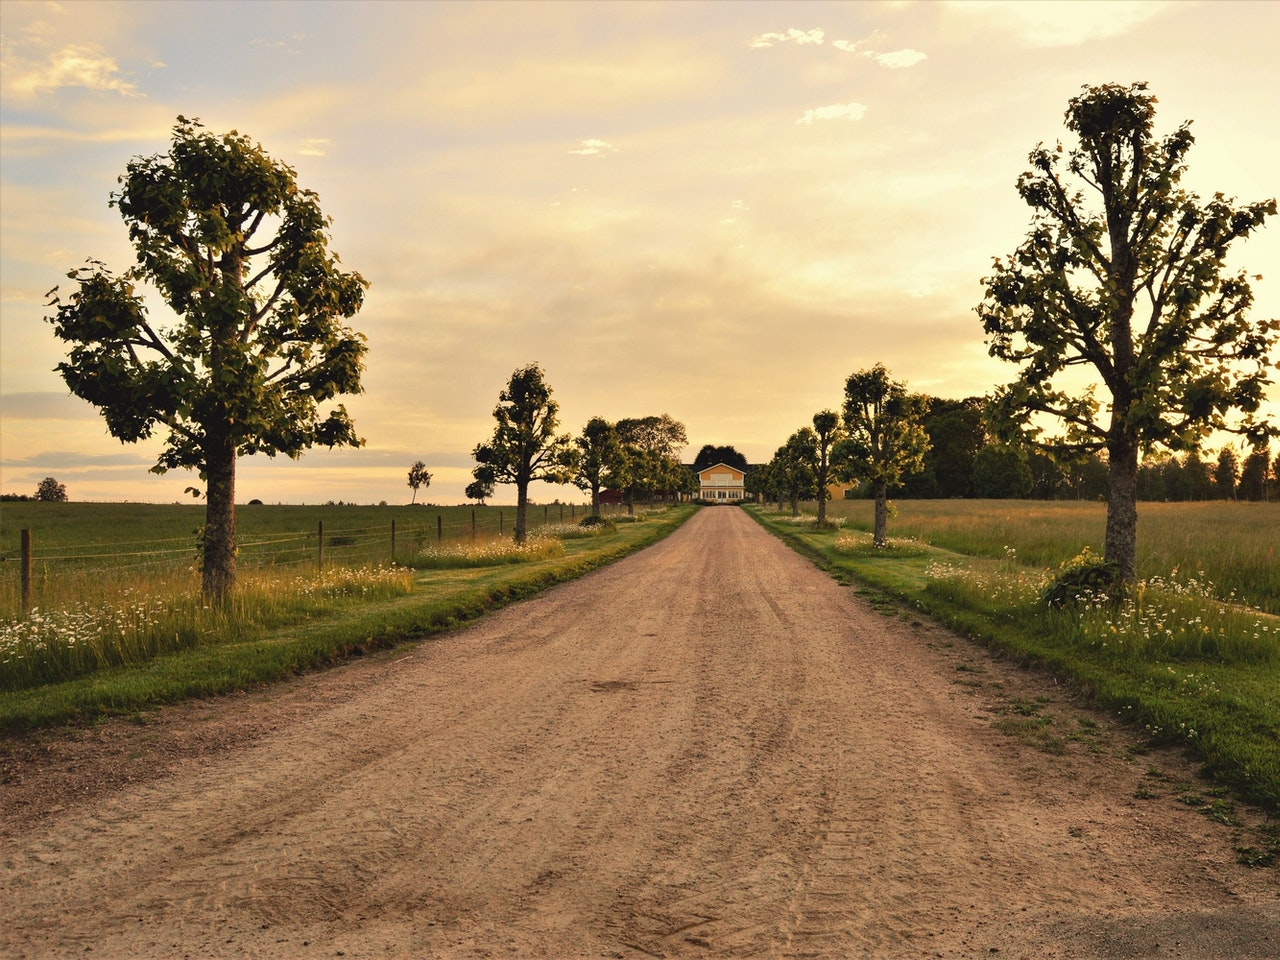 clouds-country-countryside-dirt-road-461755